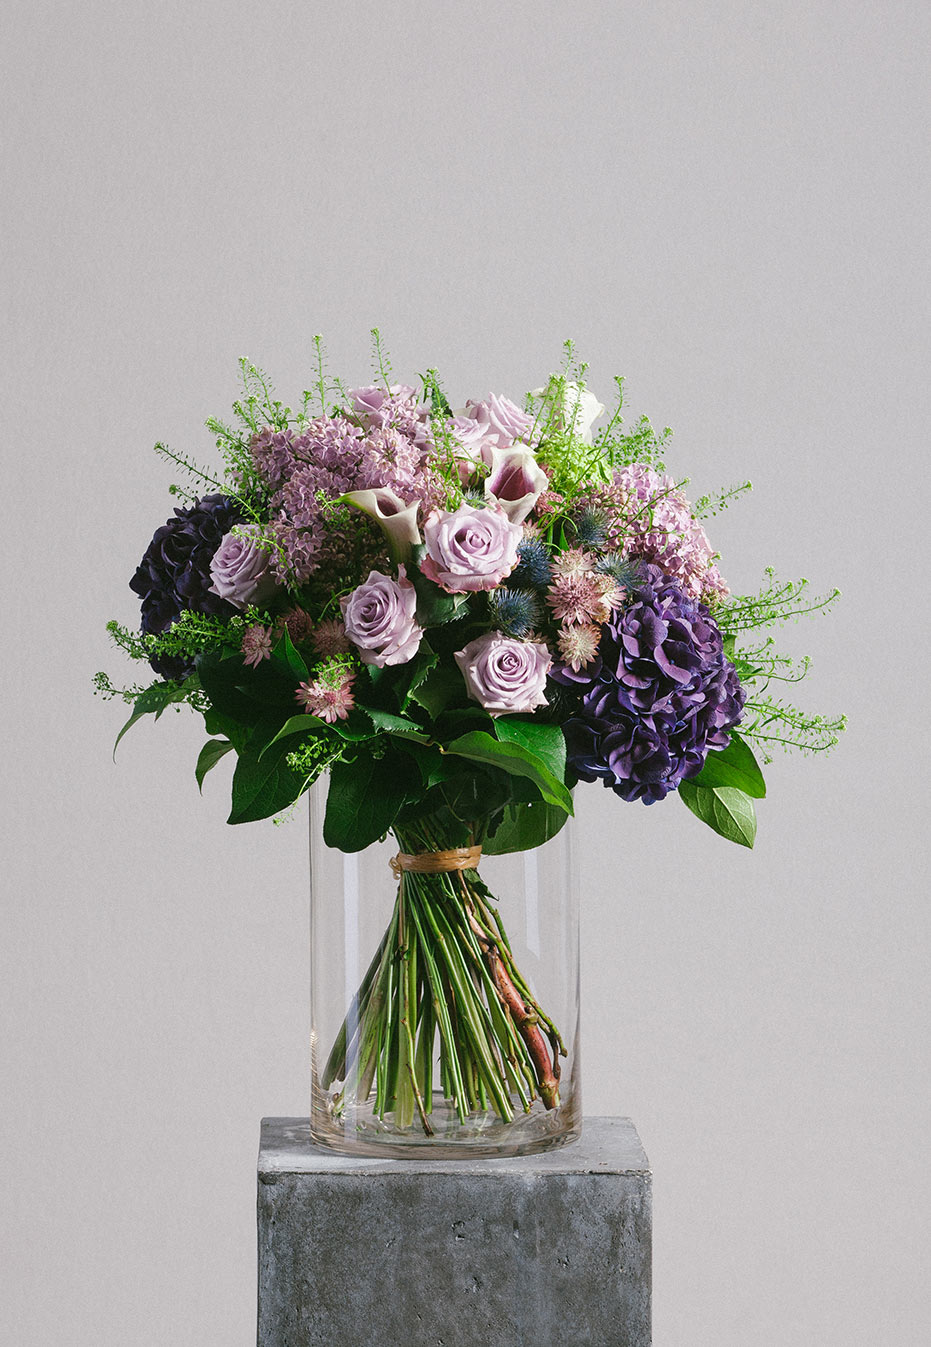 flower bouquet of hydrangea and purple rose by flannel flowers